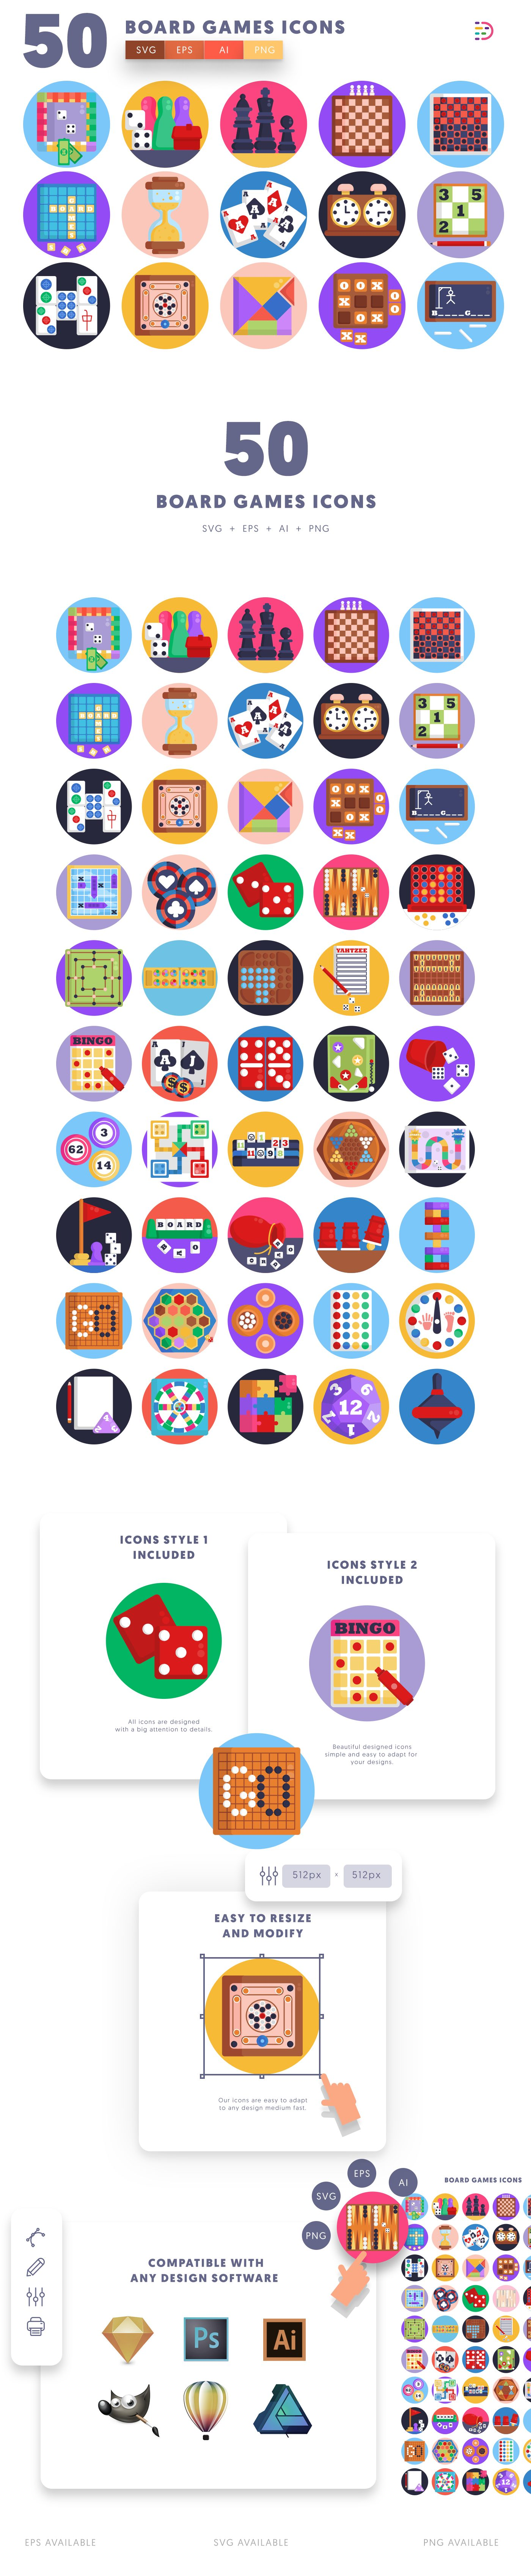 Board Games icons info graphic